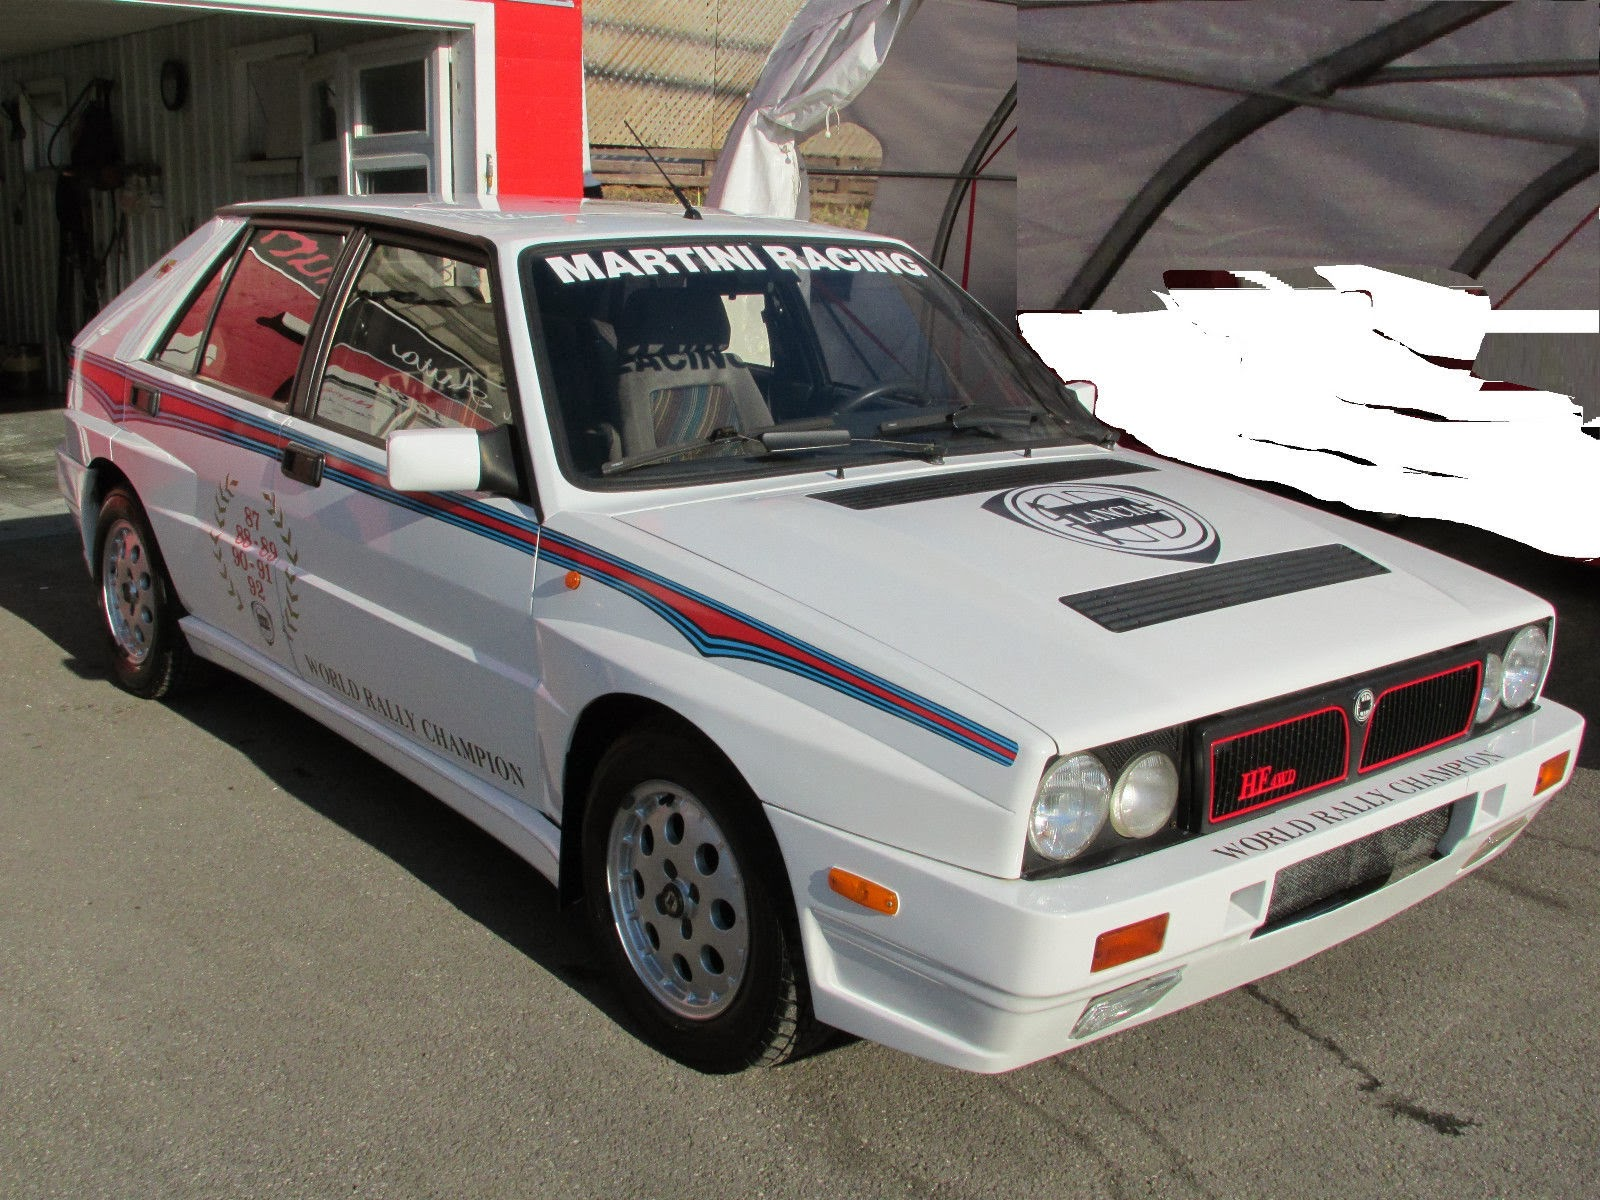 this delta started out as a simpleplain hf awd but someone has added integrale fender flares and a sweet martini racing paint scheme